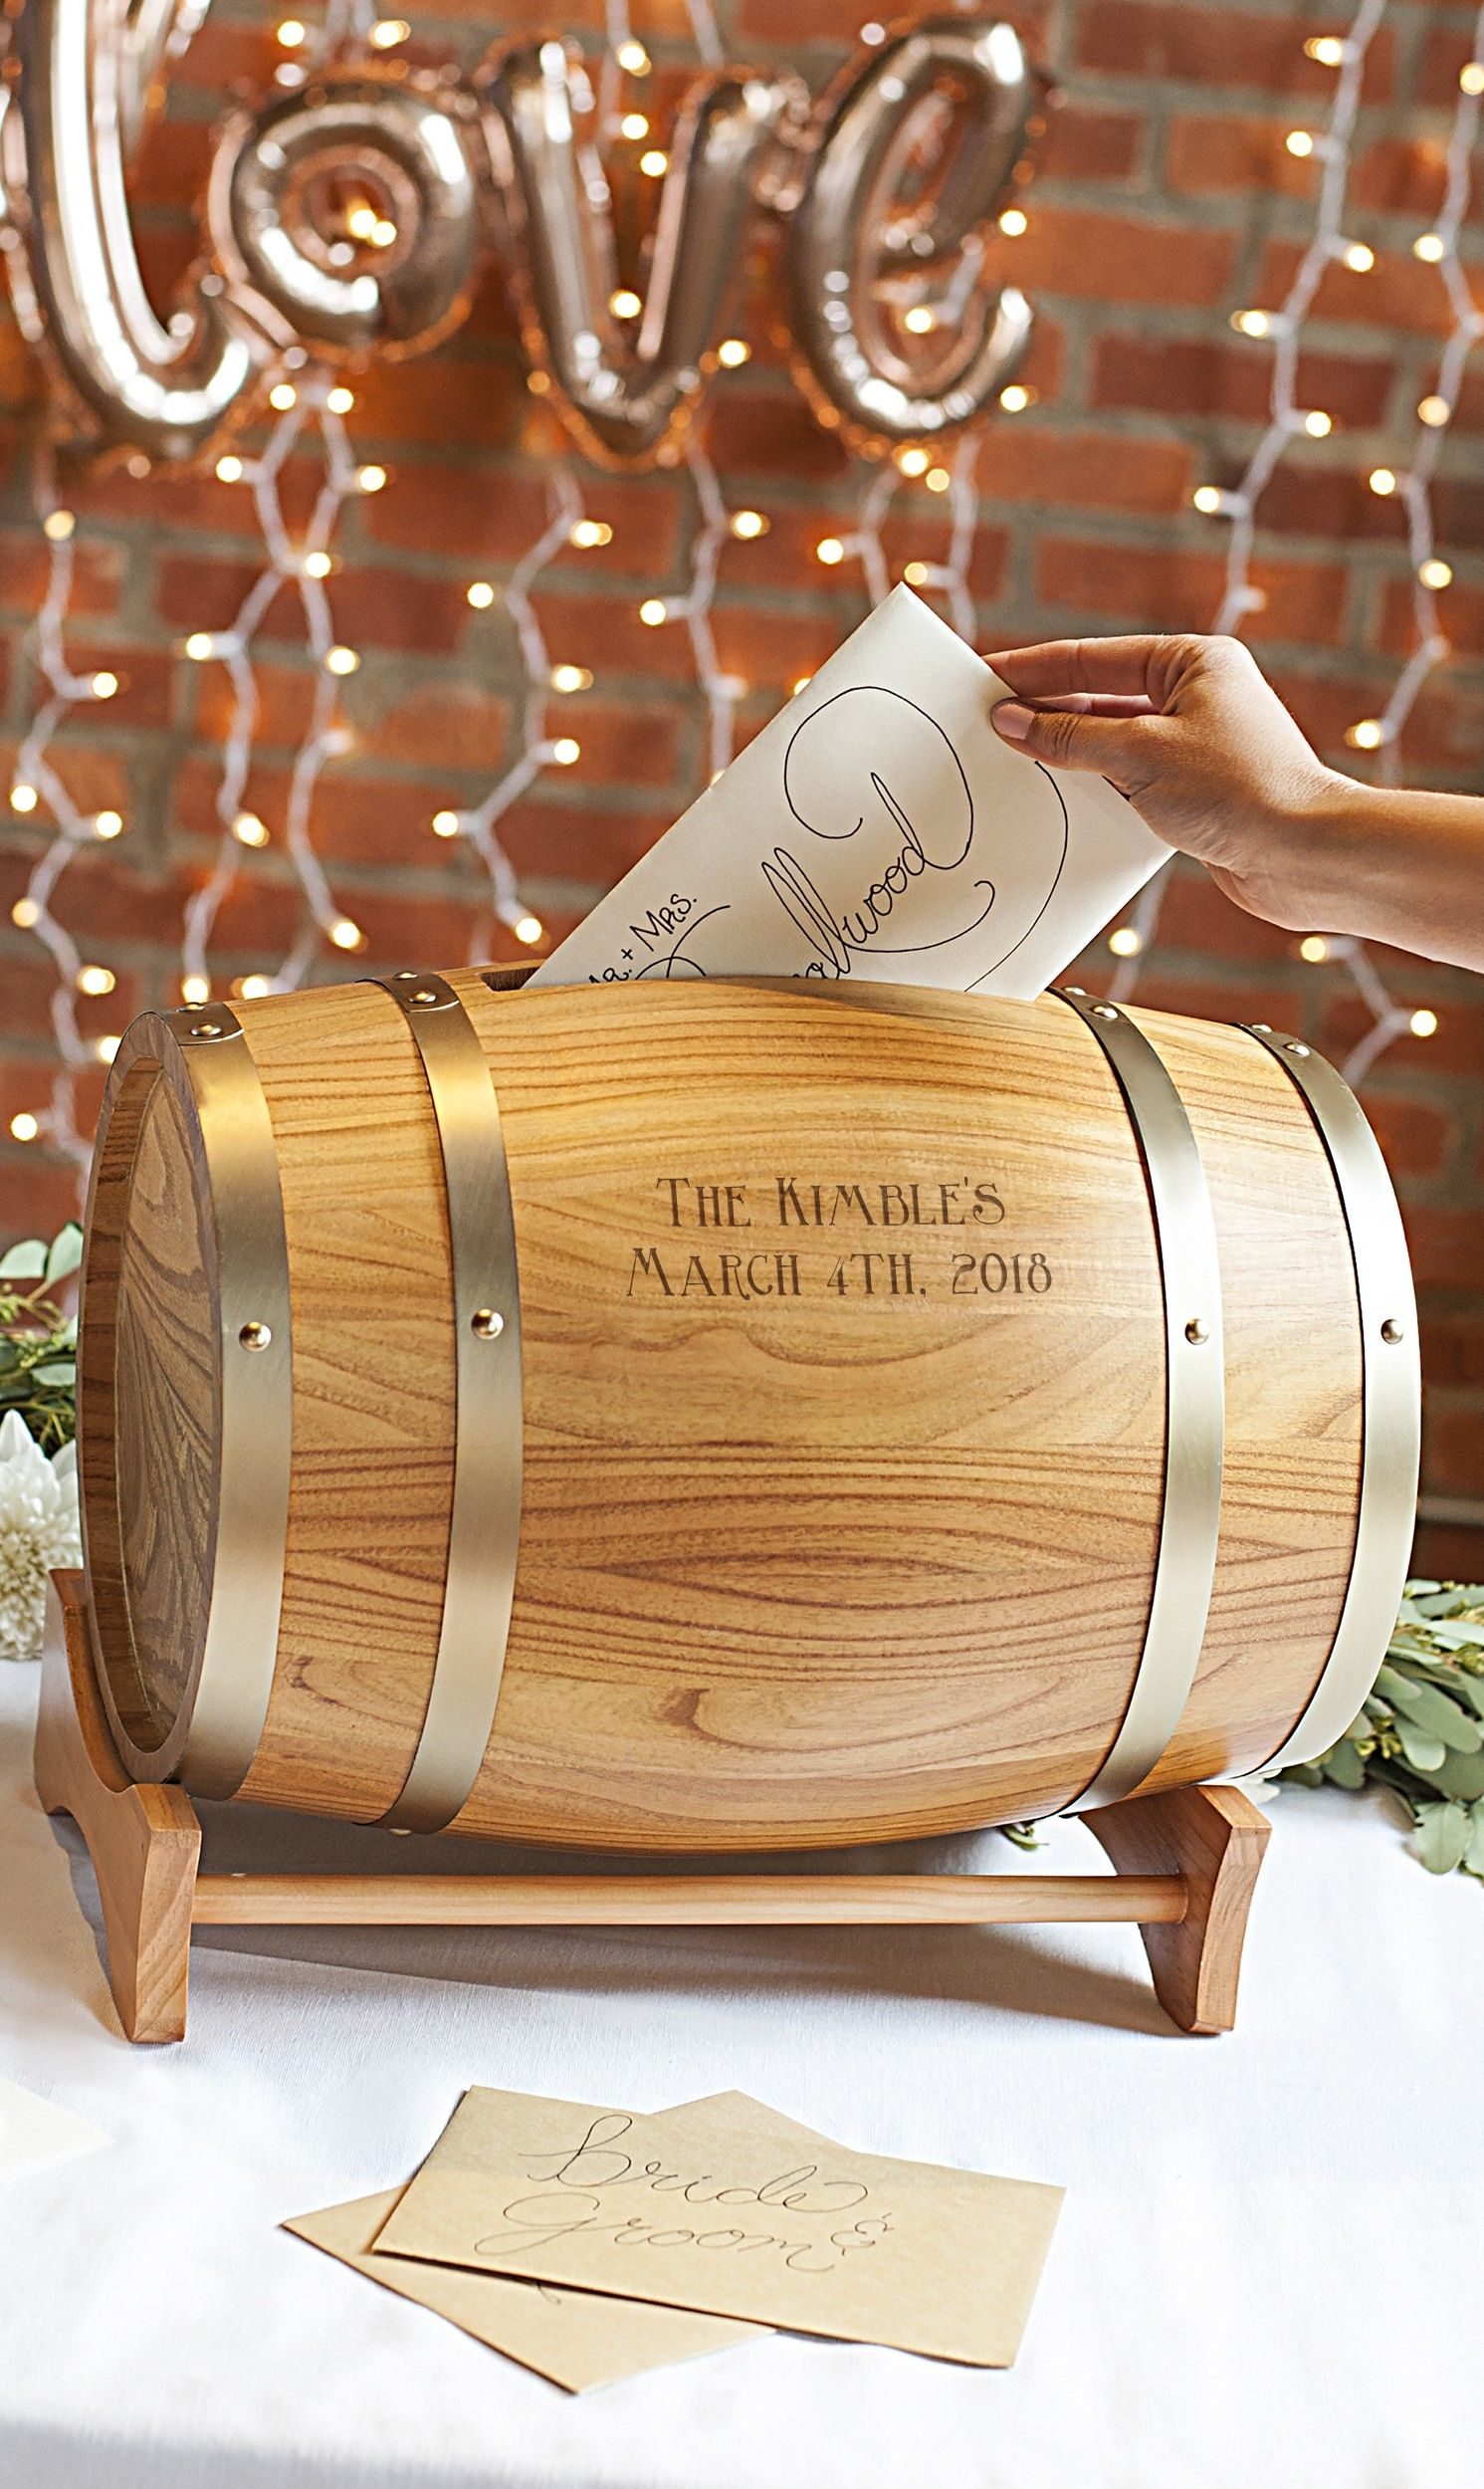 Personalized Wood Wine Barrel Wedding Gift Cards Holder